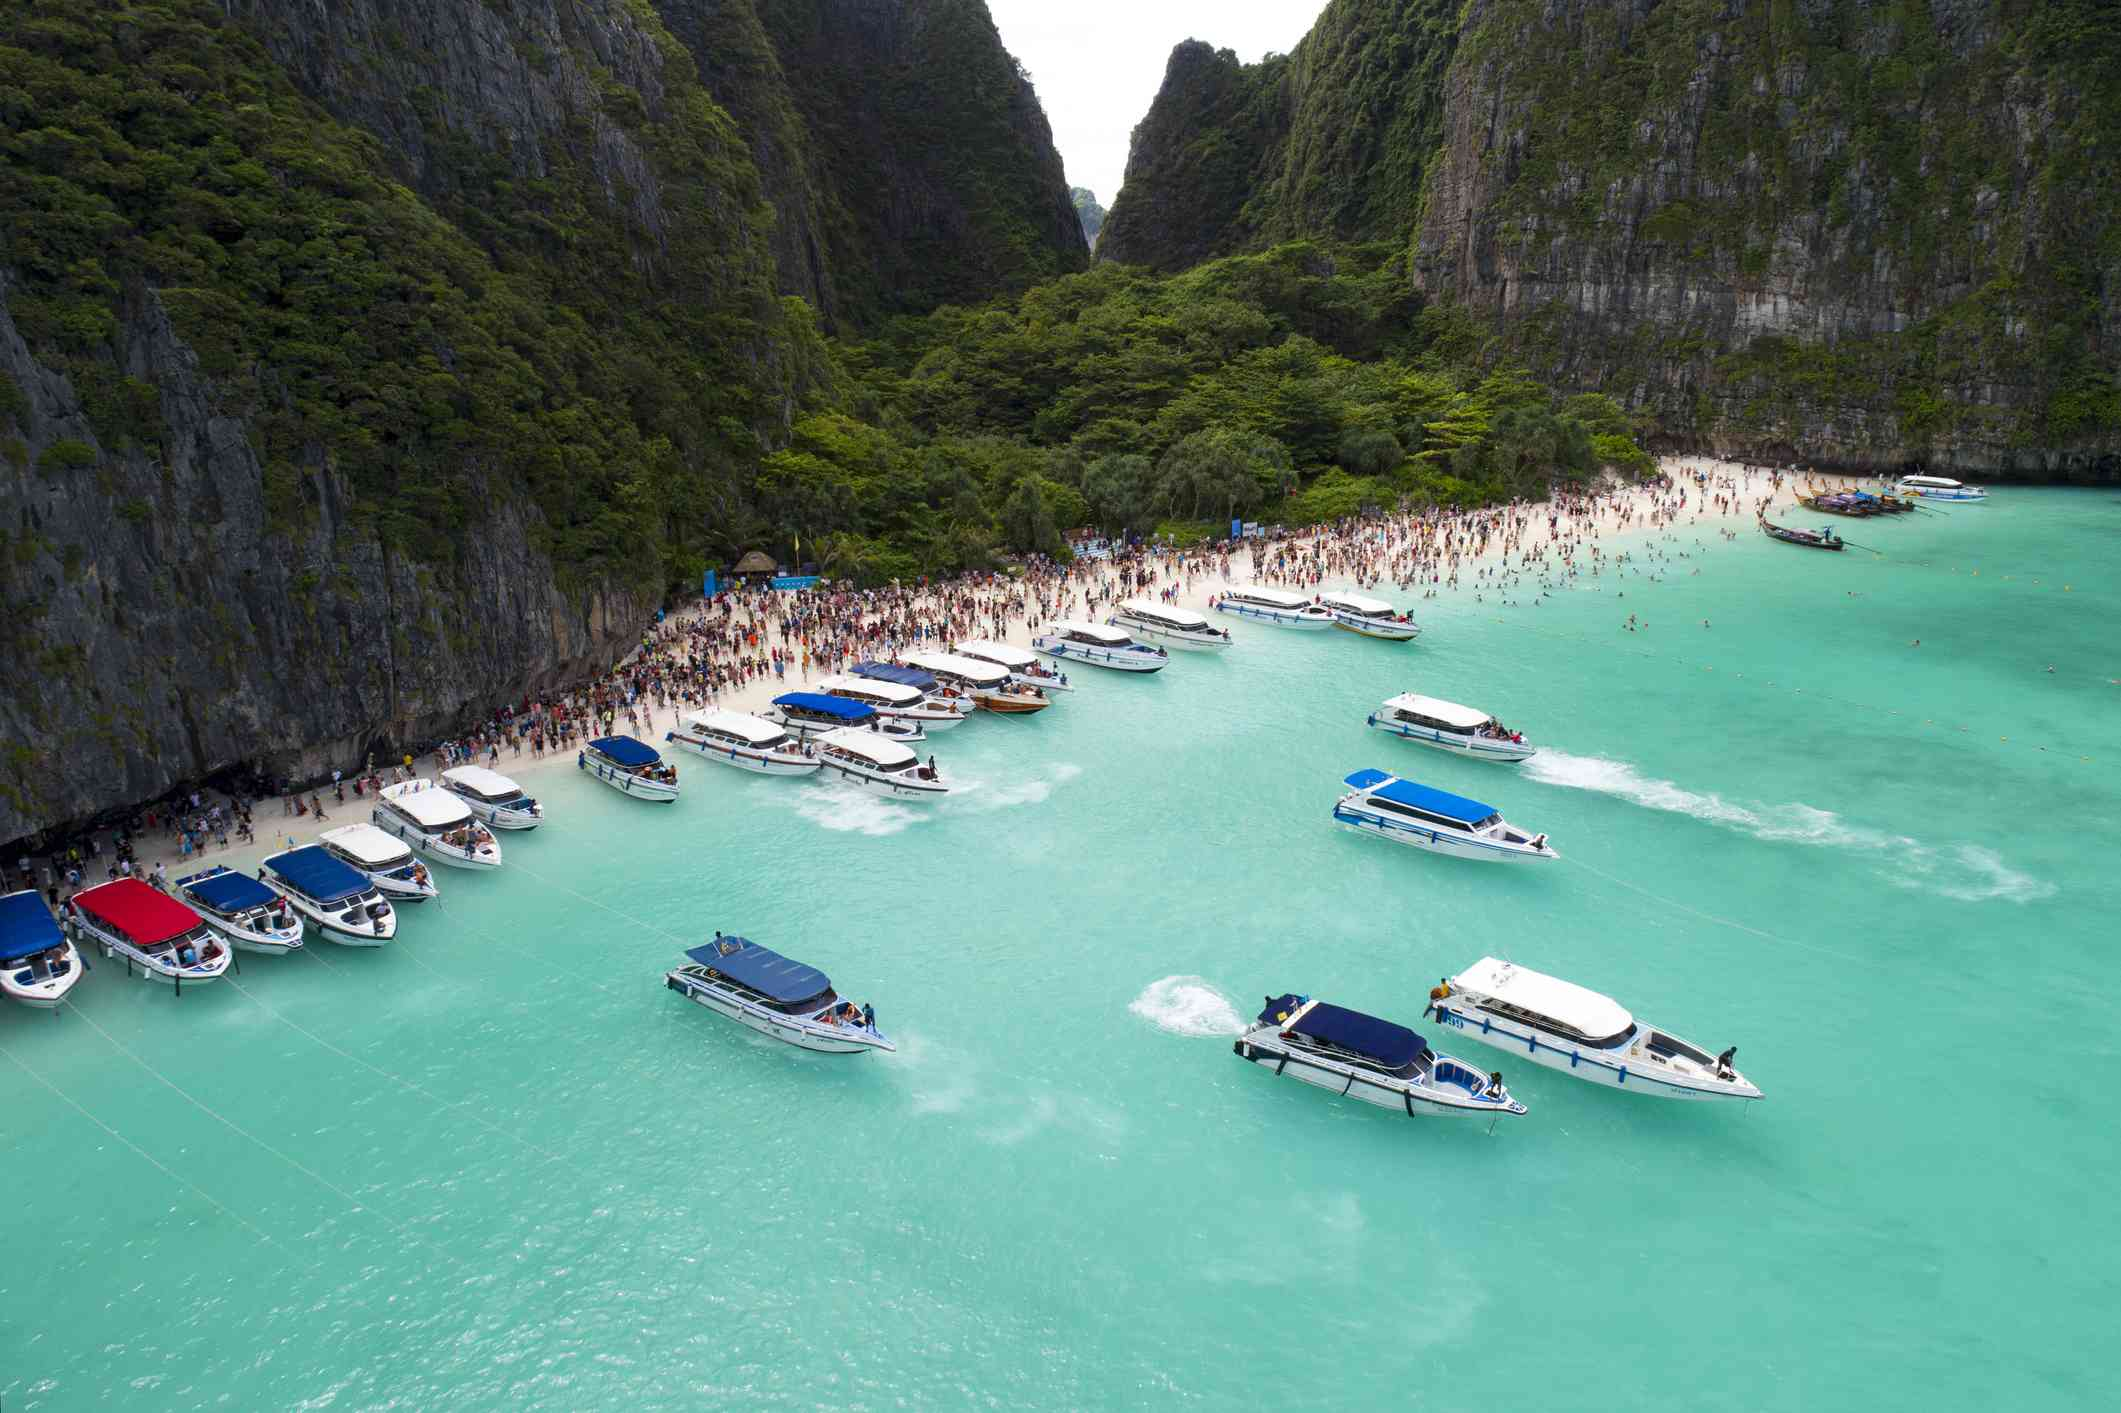 Boats and tourists flock to Maya Bay in Thailand